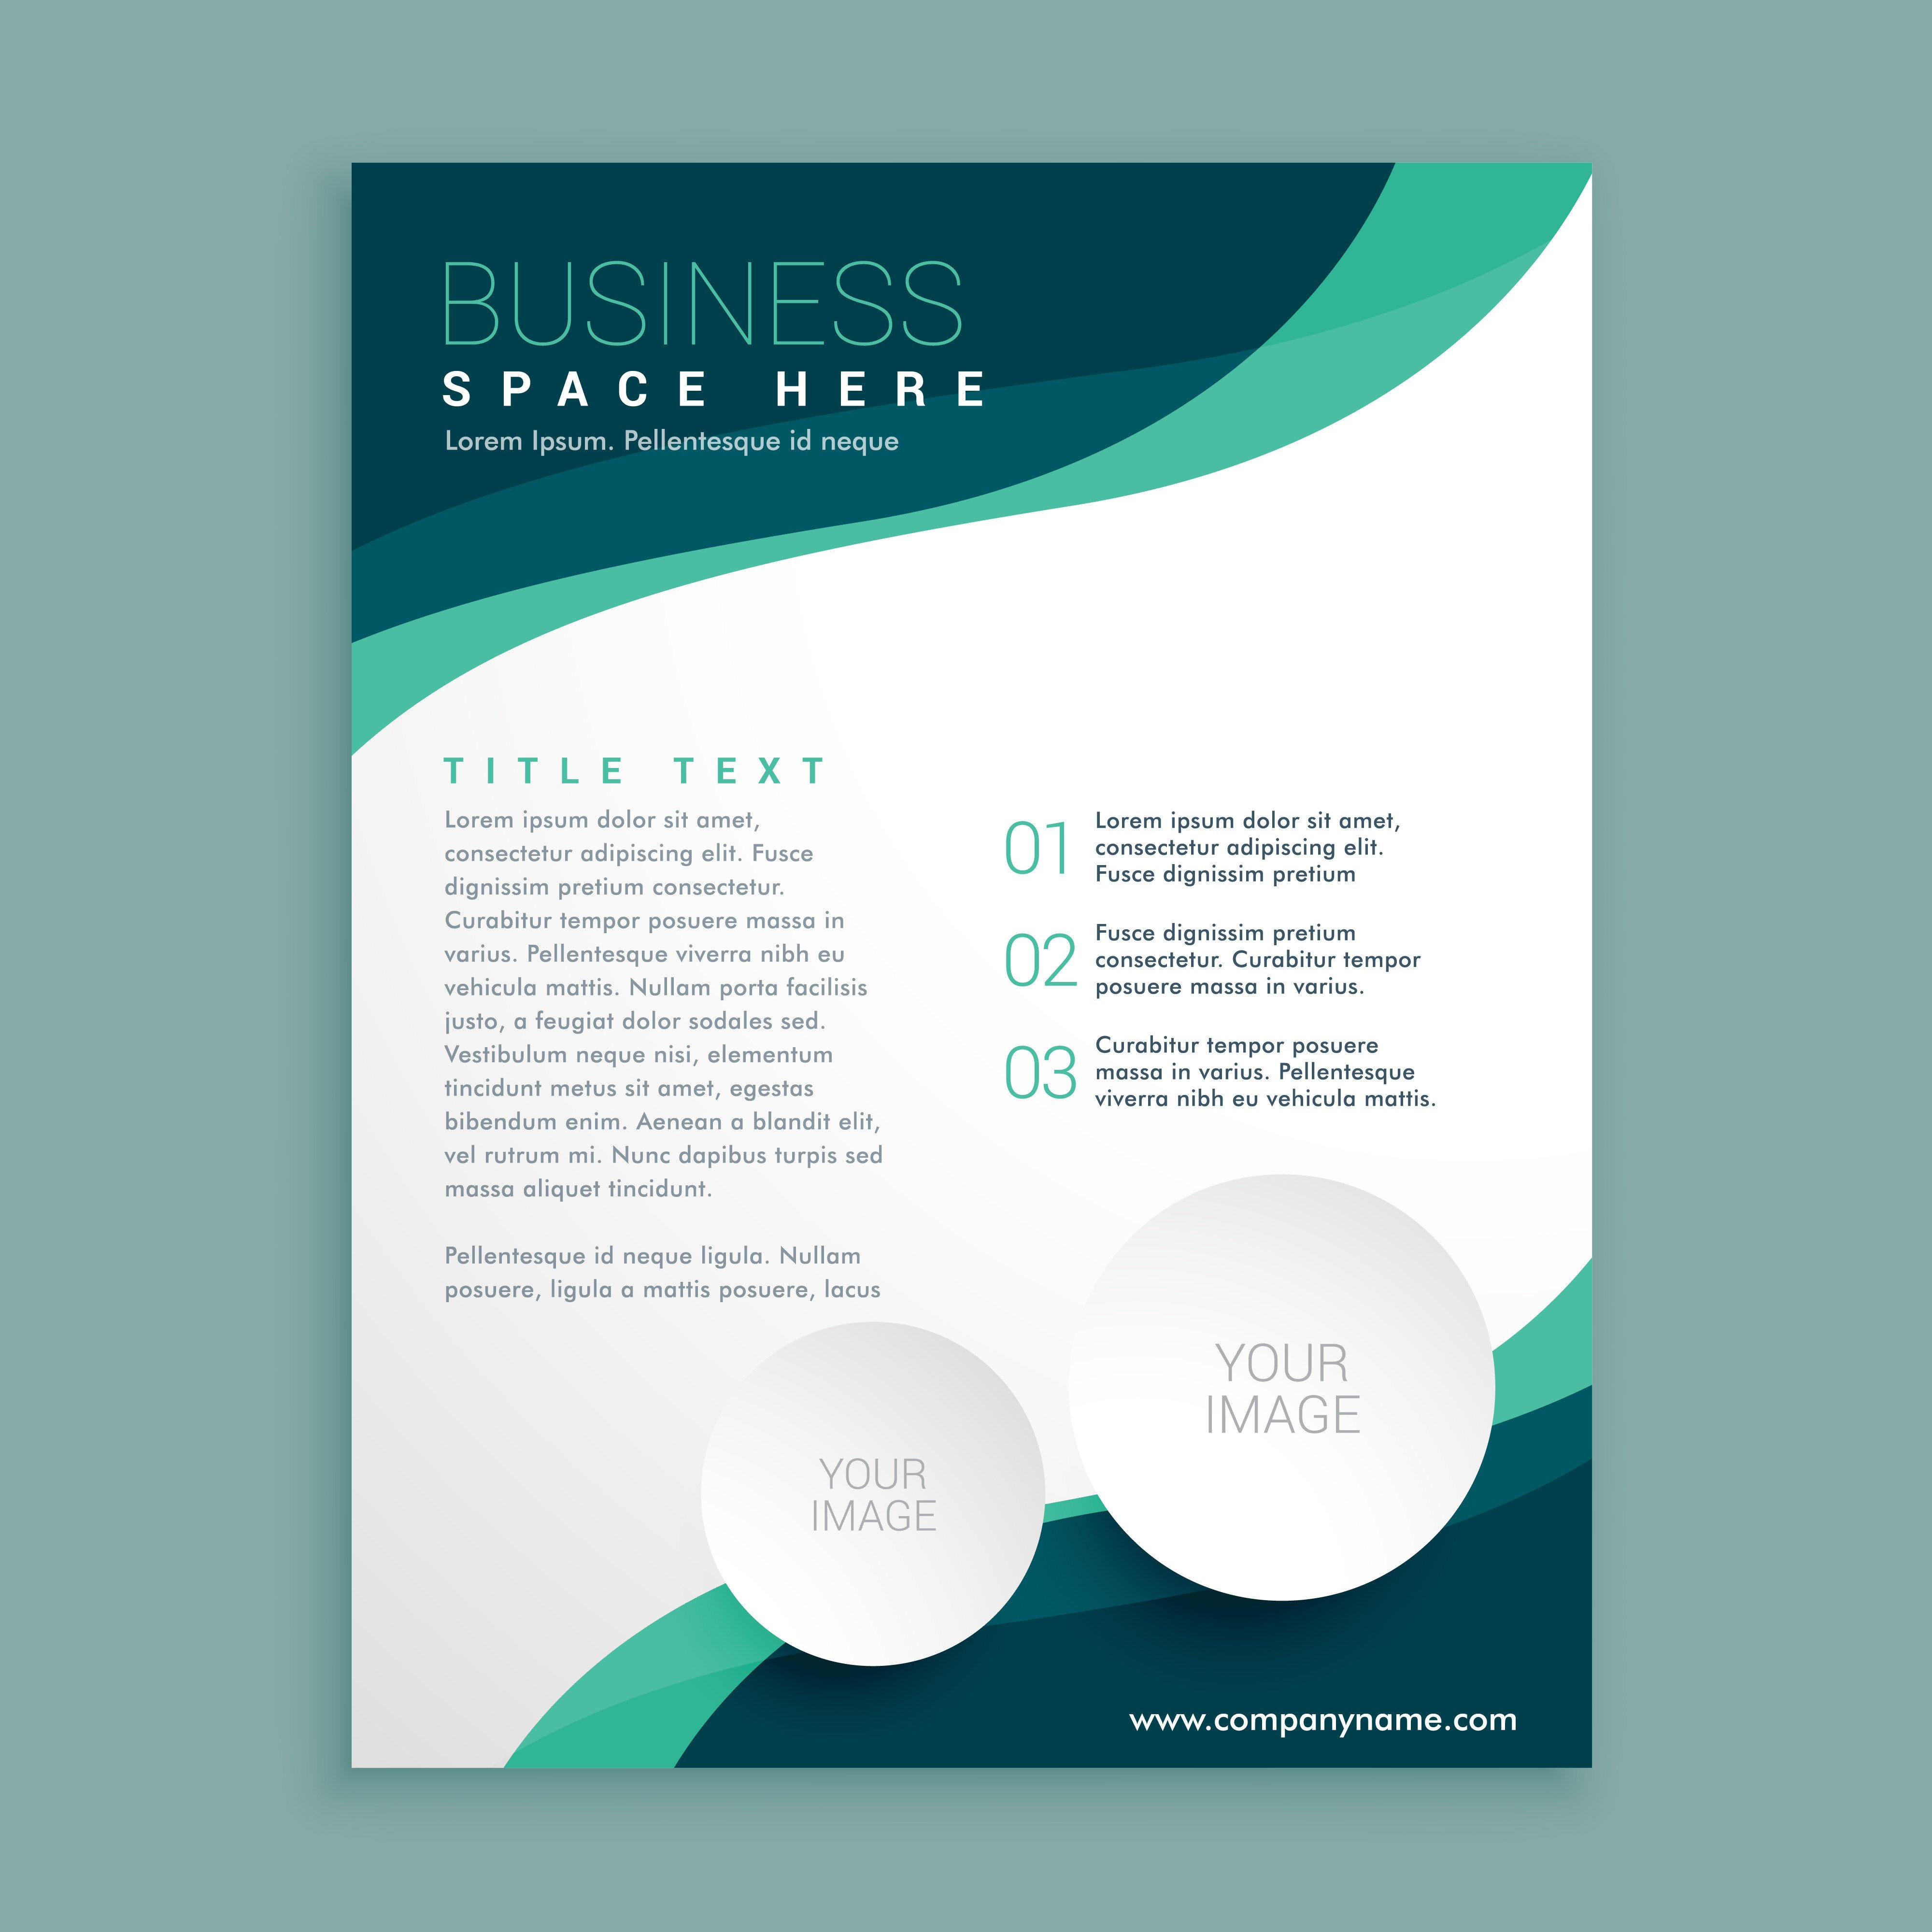 Free Poster Design Templates Pamphlet Free Vector Art 19 238 Free Downloads